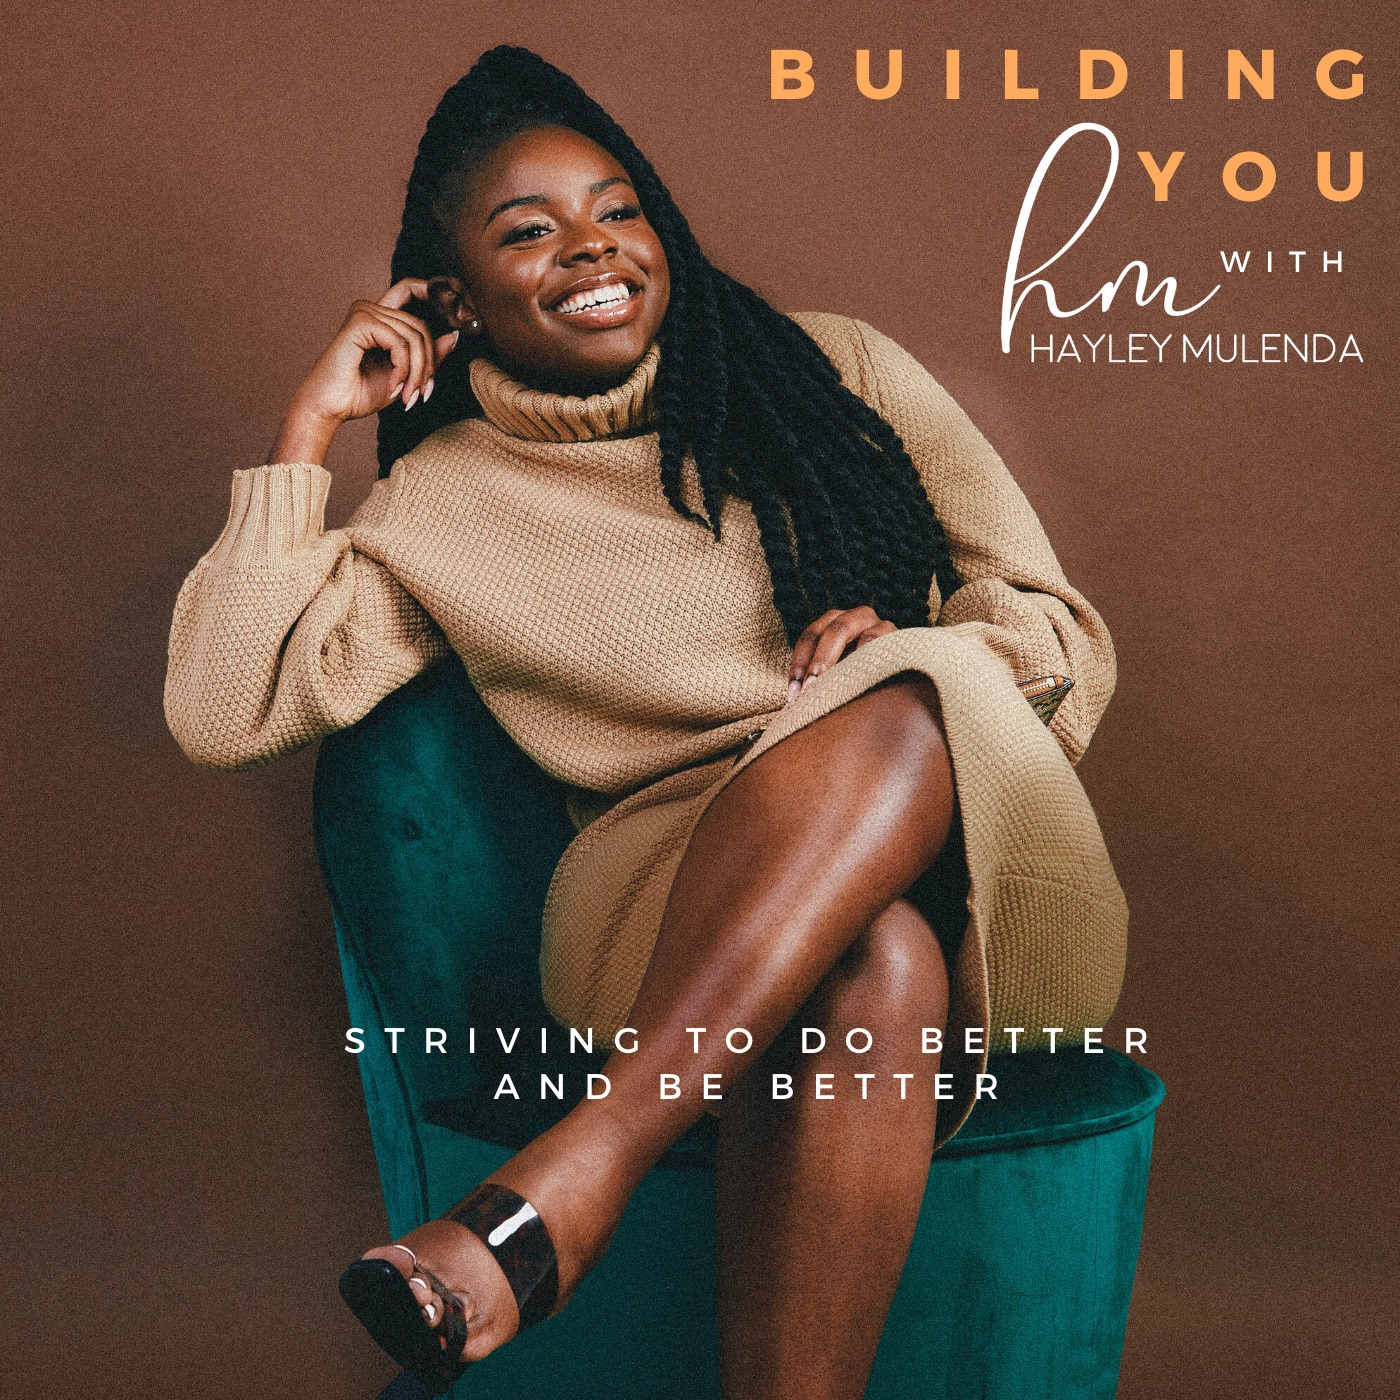 Building You with Hayley Mulenda